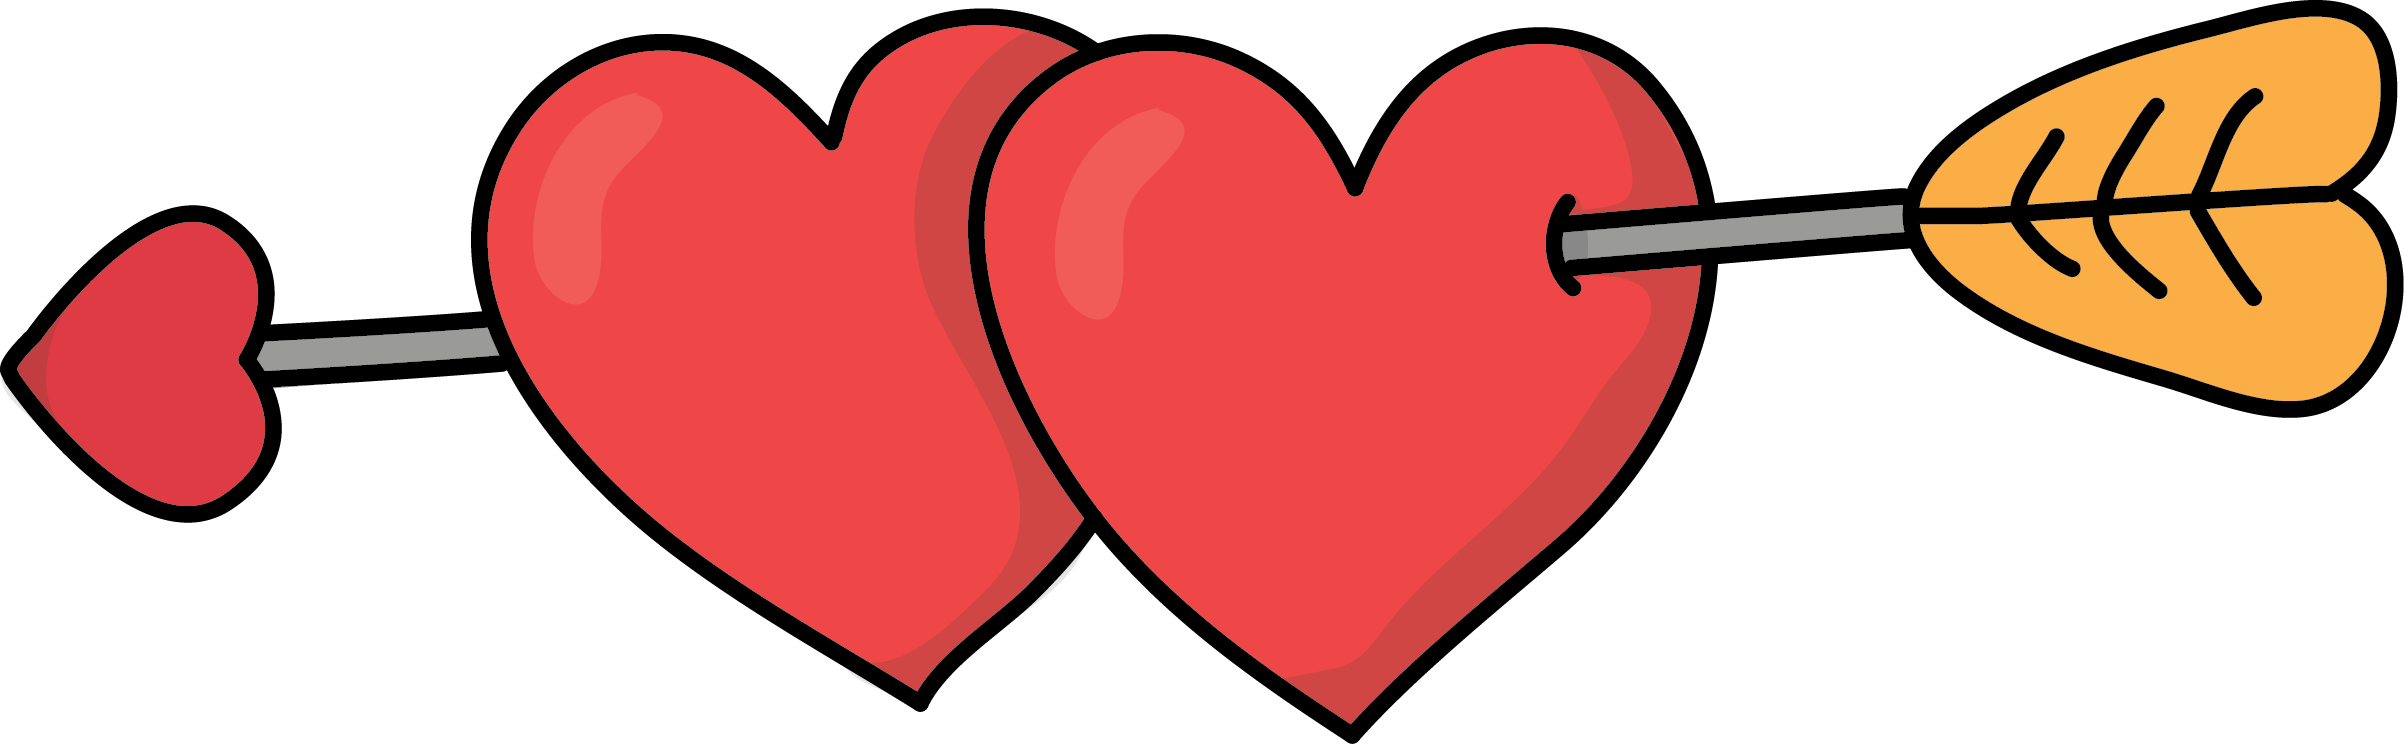 Heart arrow clip art image free Image for free arrow through hearts clip art | Love Clip Art Free ... image free